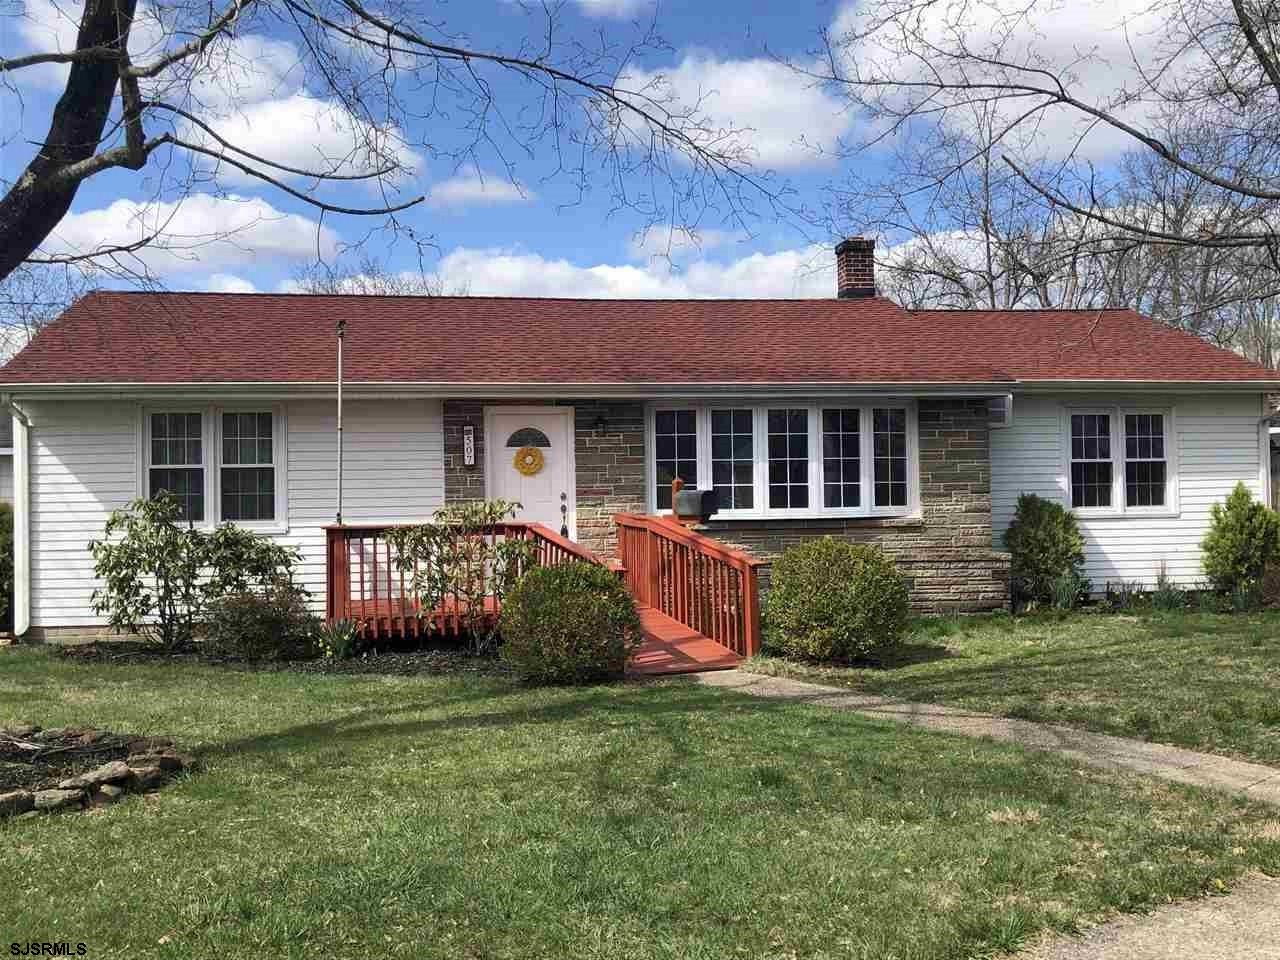 First Time Home Buyer Alert: Renovated 3 bedroom, 1 bath, with den. Newer roof only 4 years old with